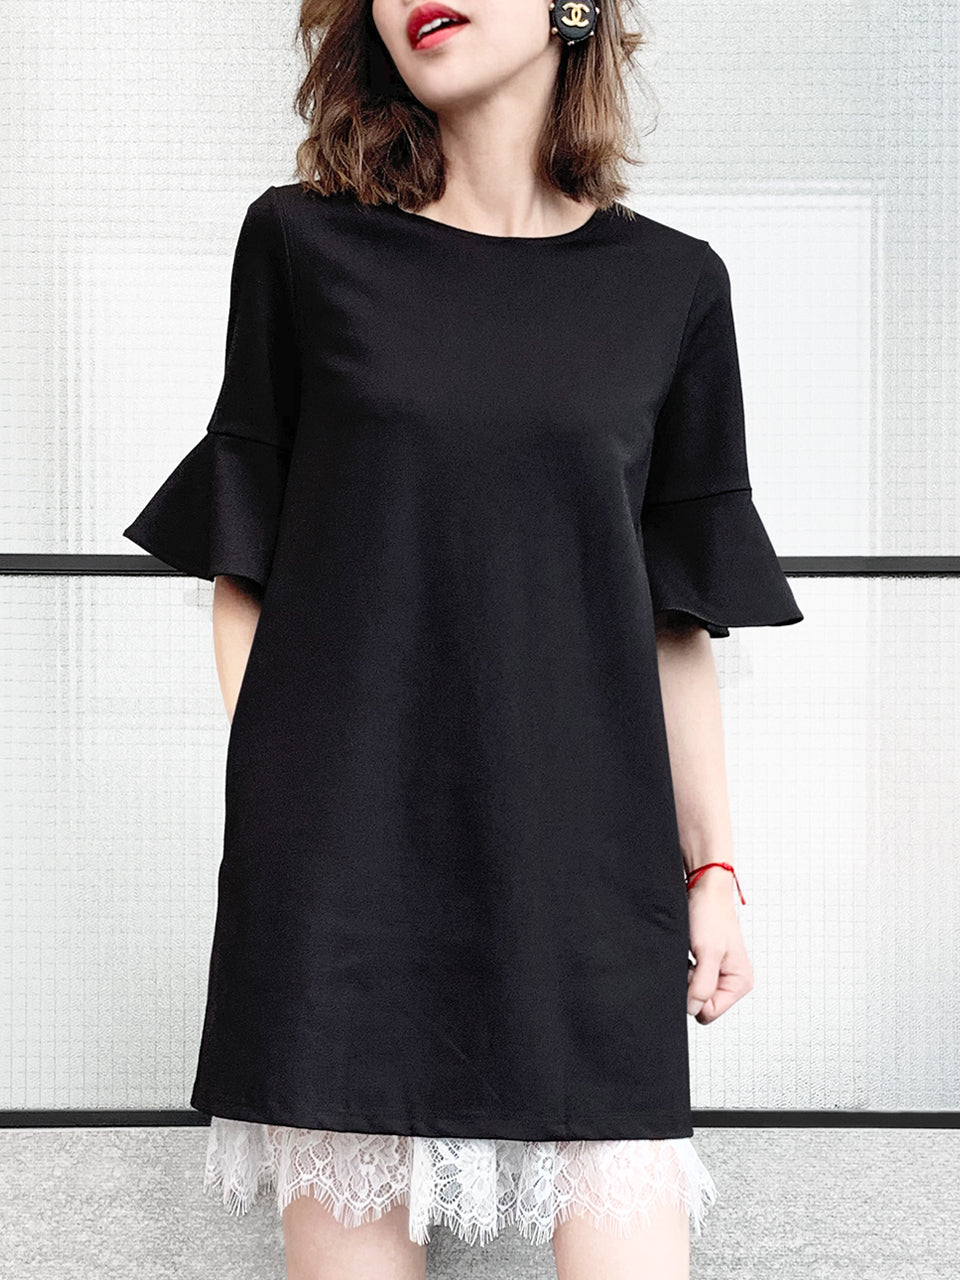 Black Lace Layered Ruffle Sleeve Tunic Dress